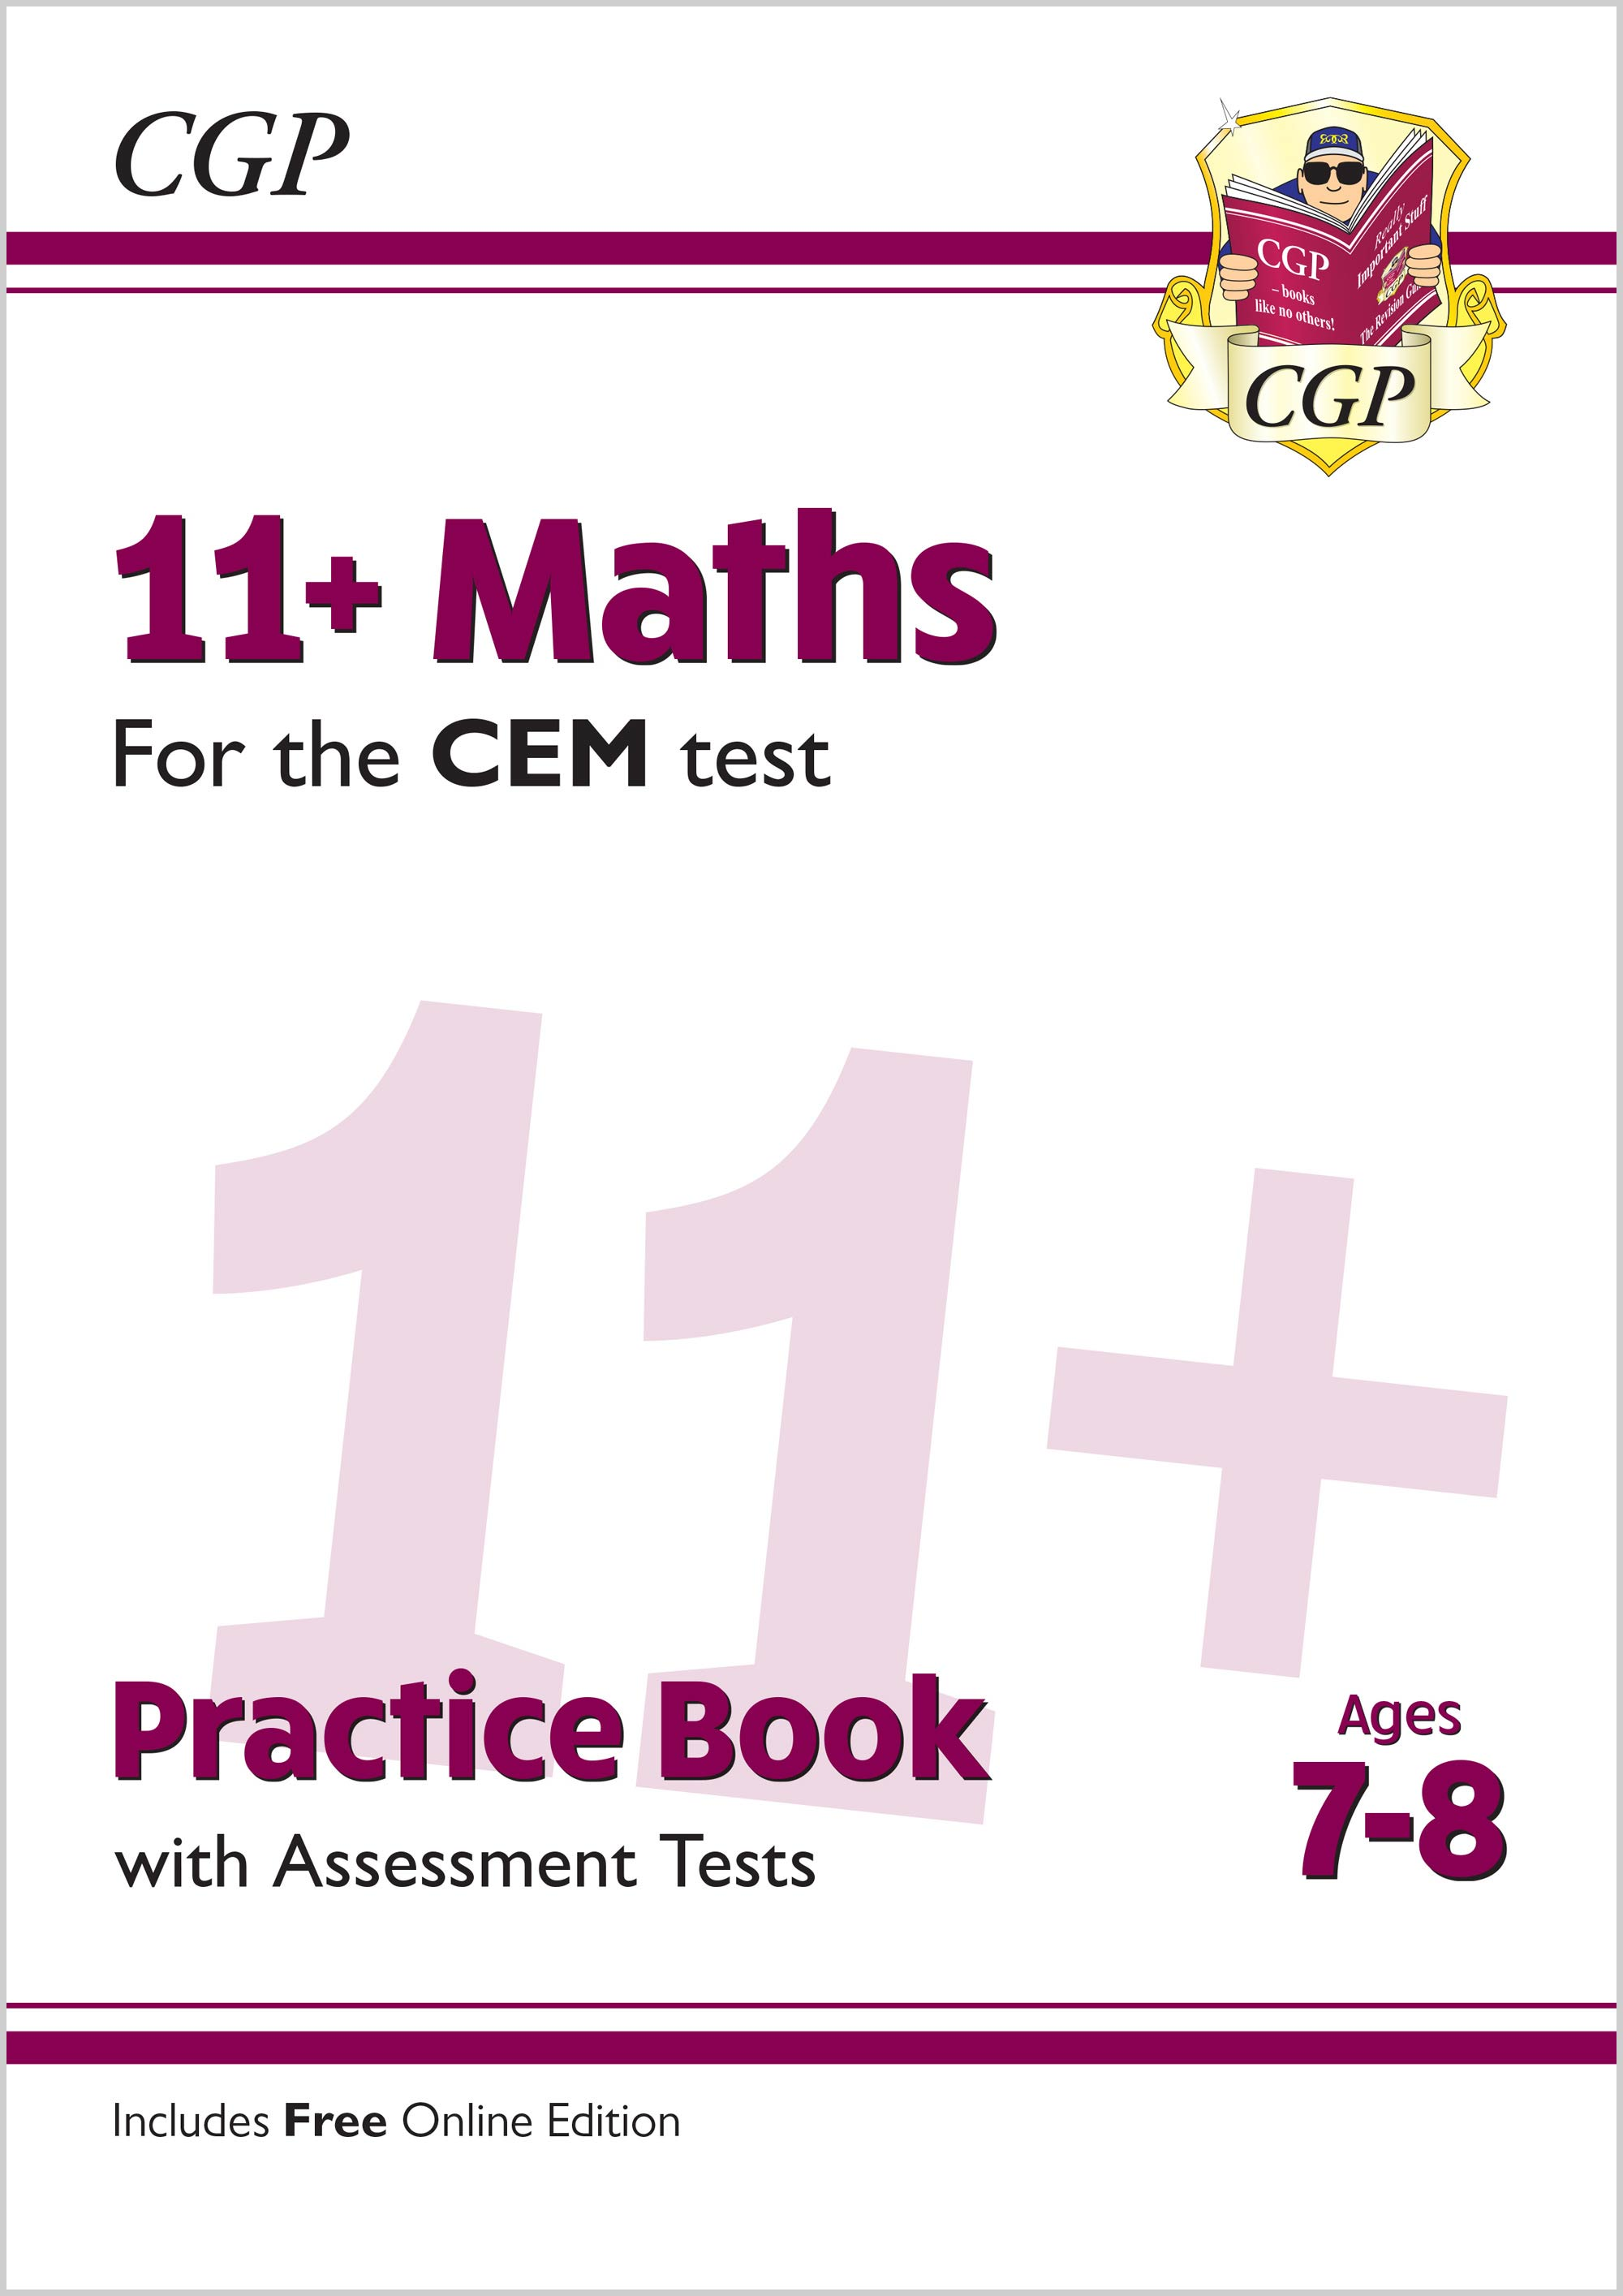 M3QDE2 - New 11+ CEM Maths Practice Book & Assessment Tests - Ages 7-8 (with Online Edition)